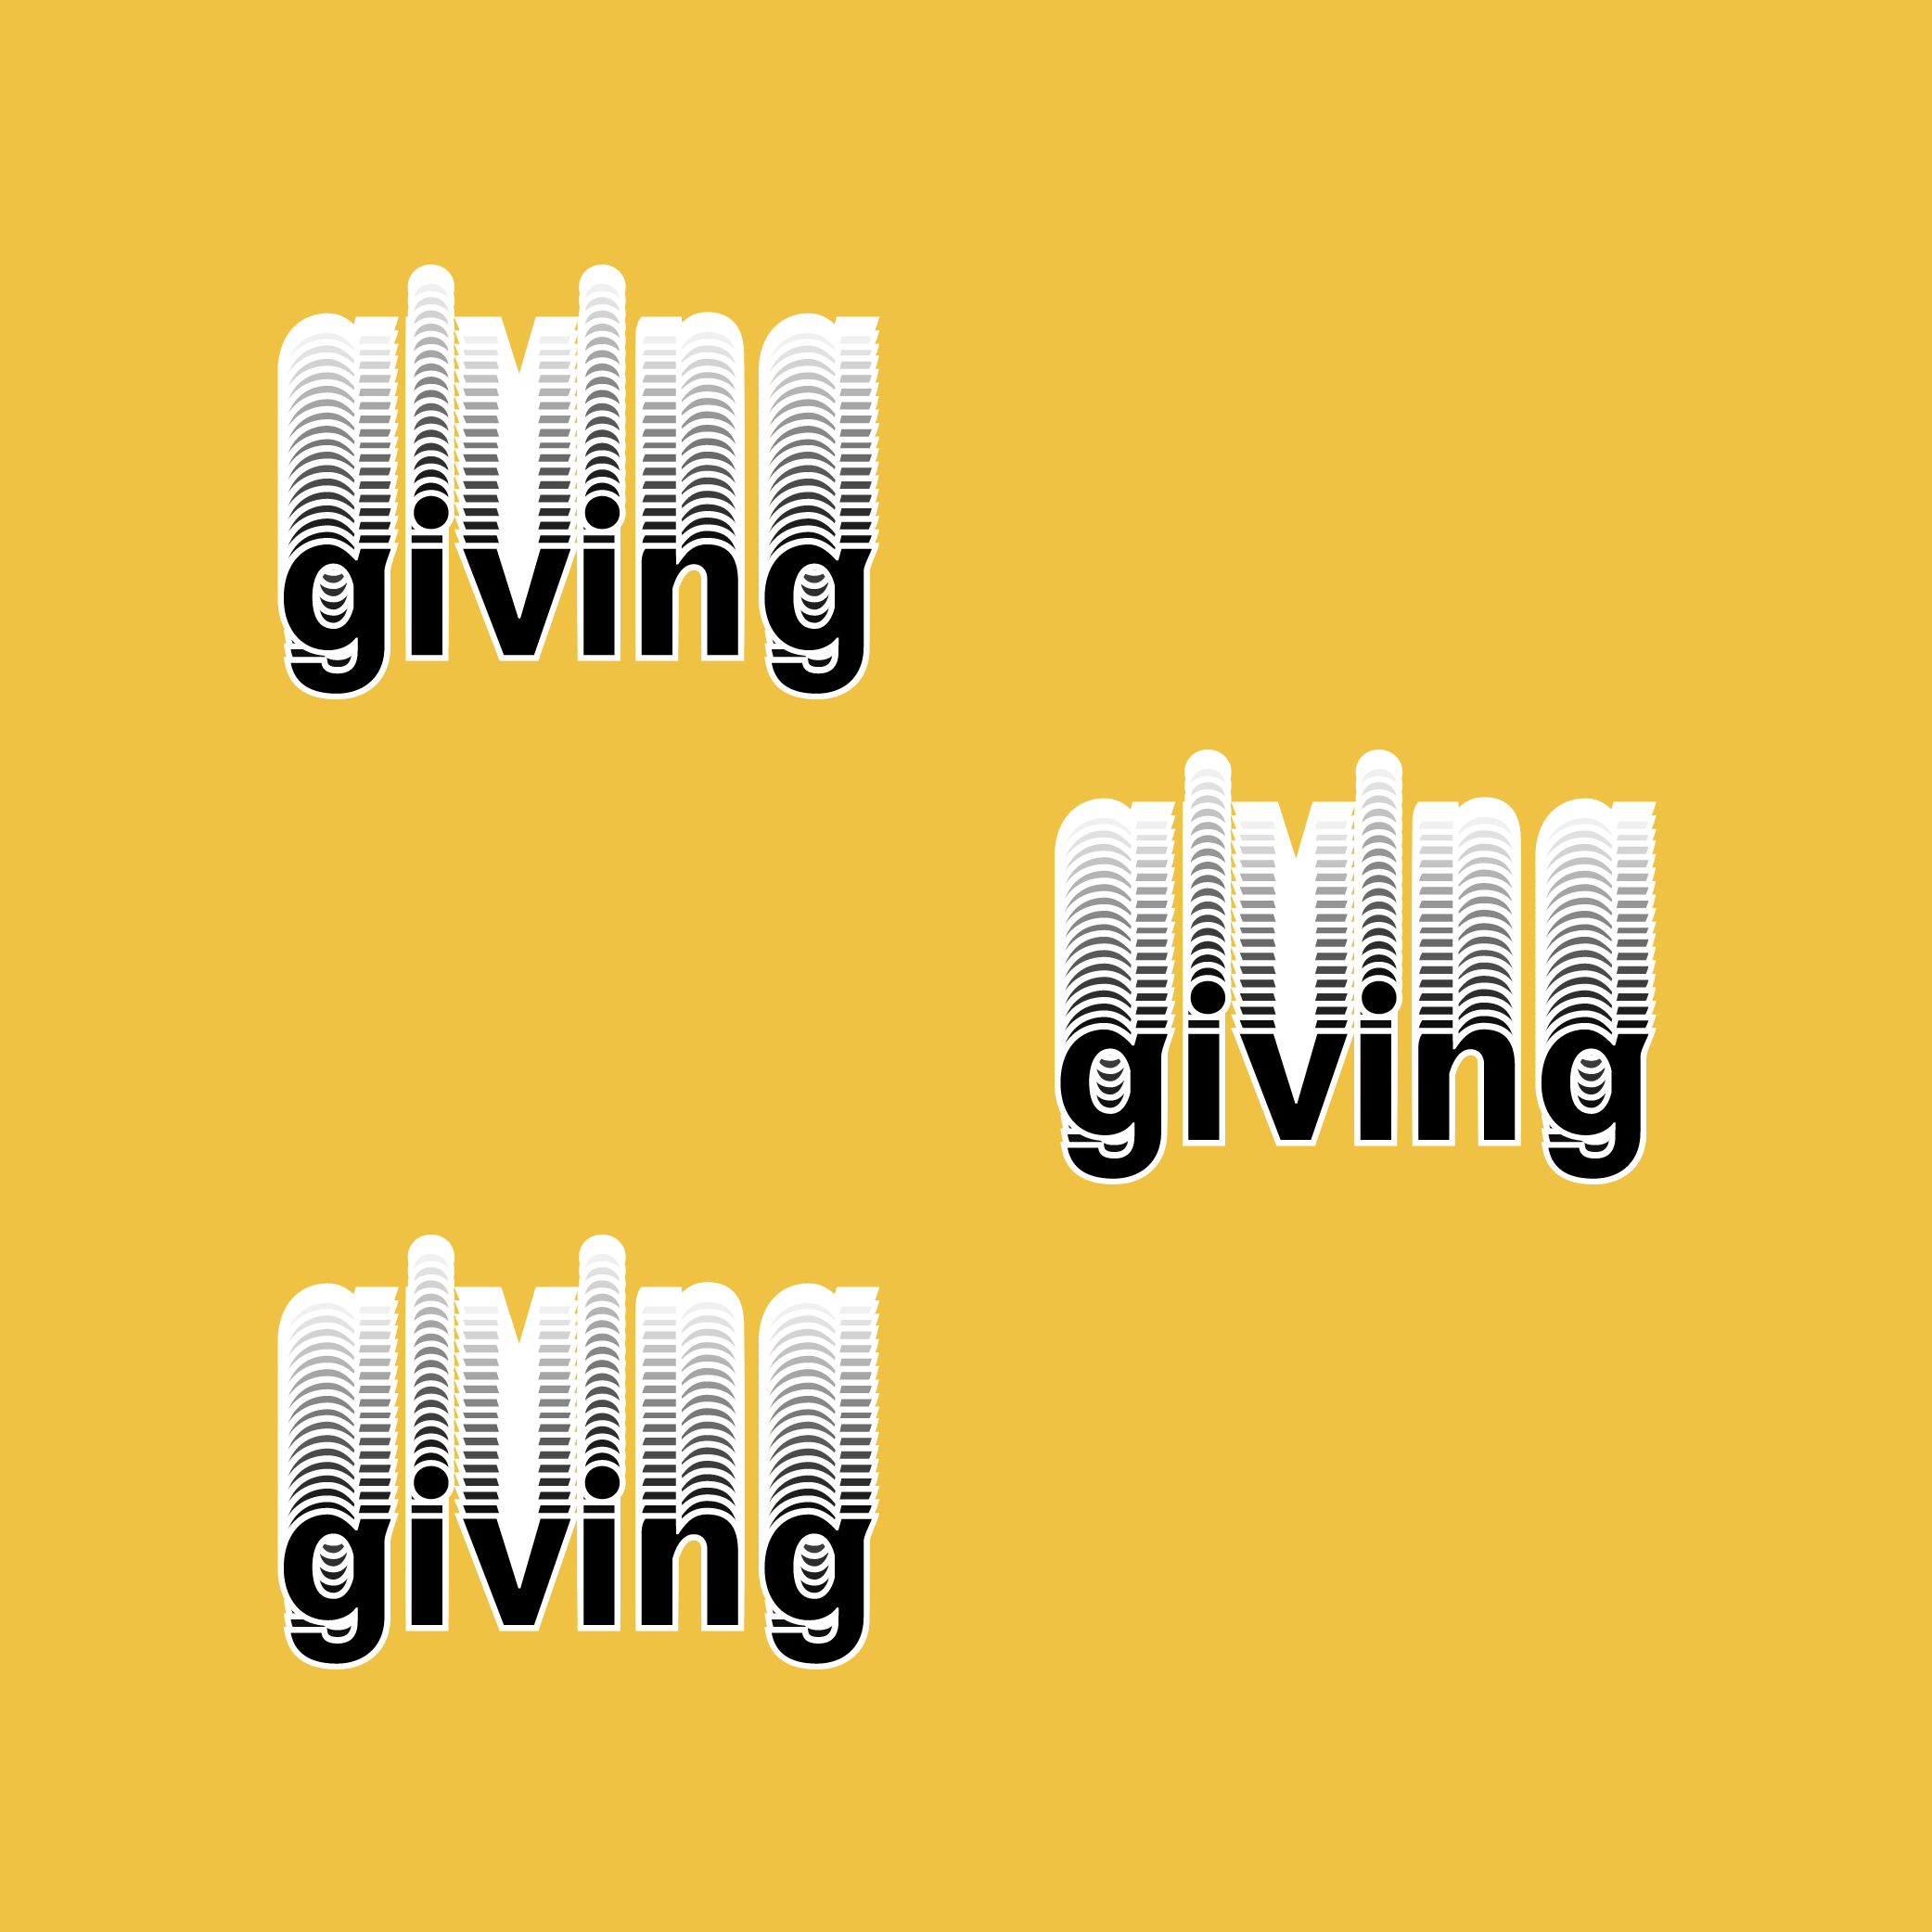 giving3x_agipo_2-03.png